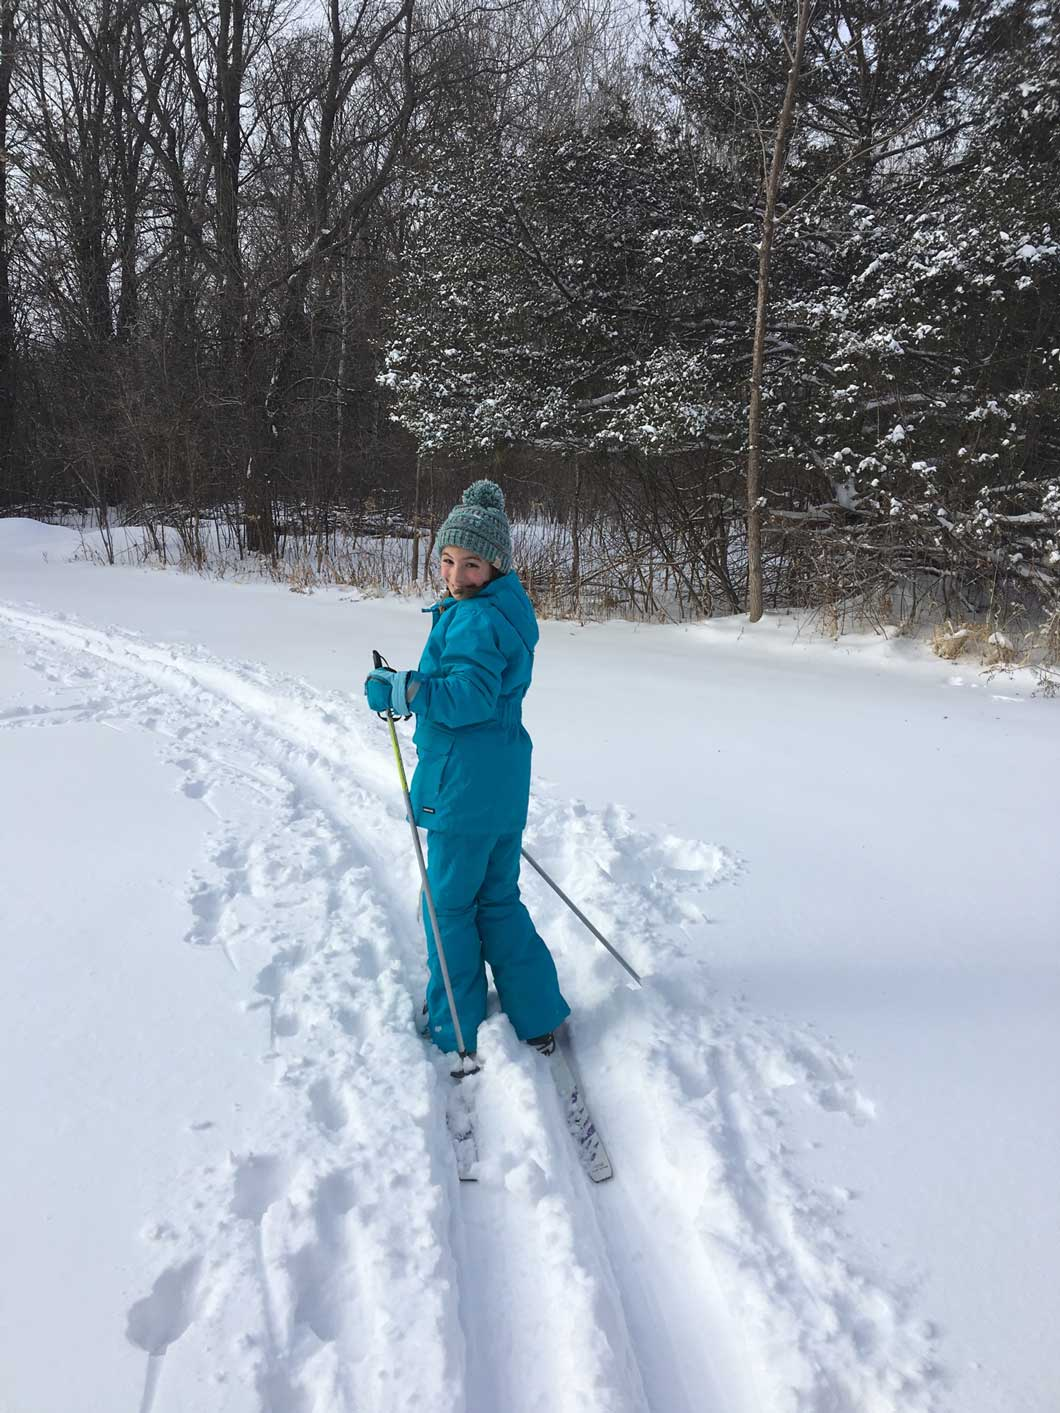 A junior Girl Scout cross country skiing.